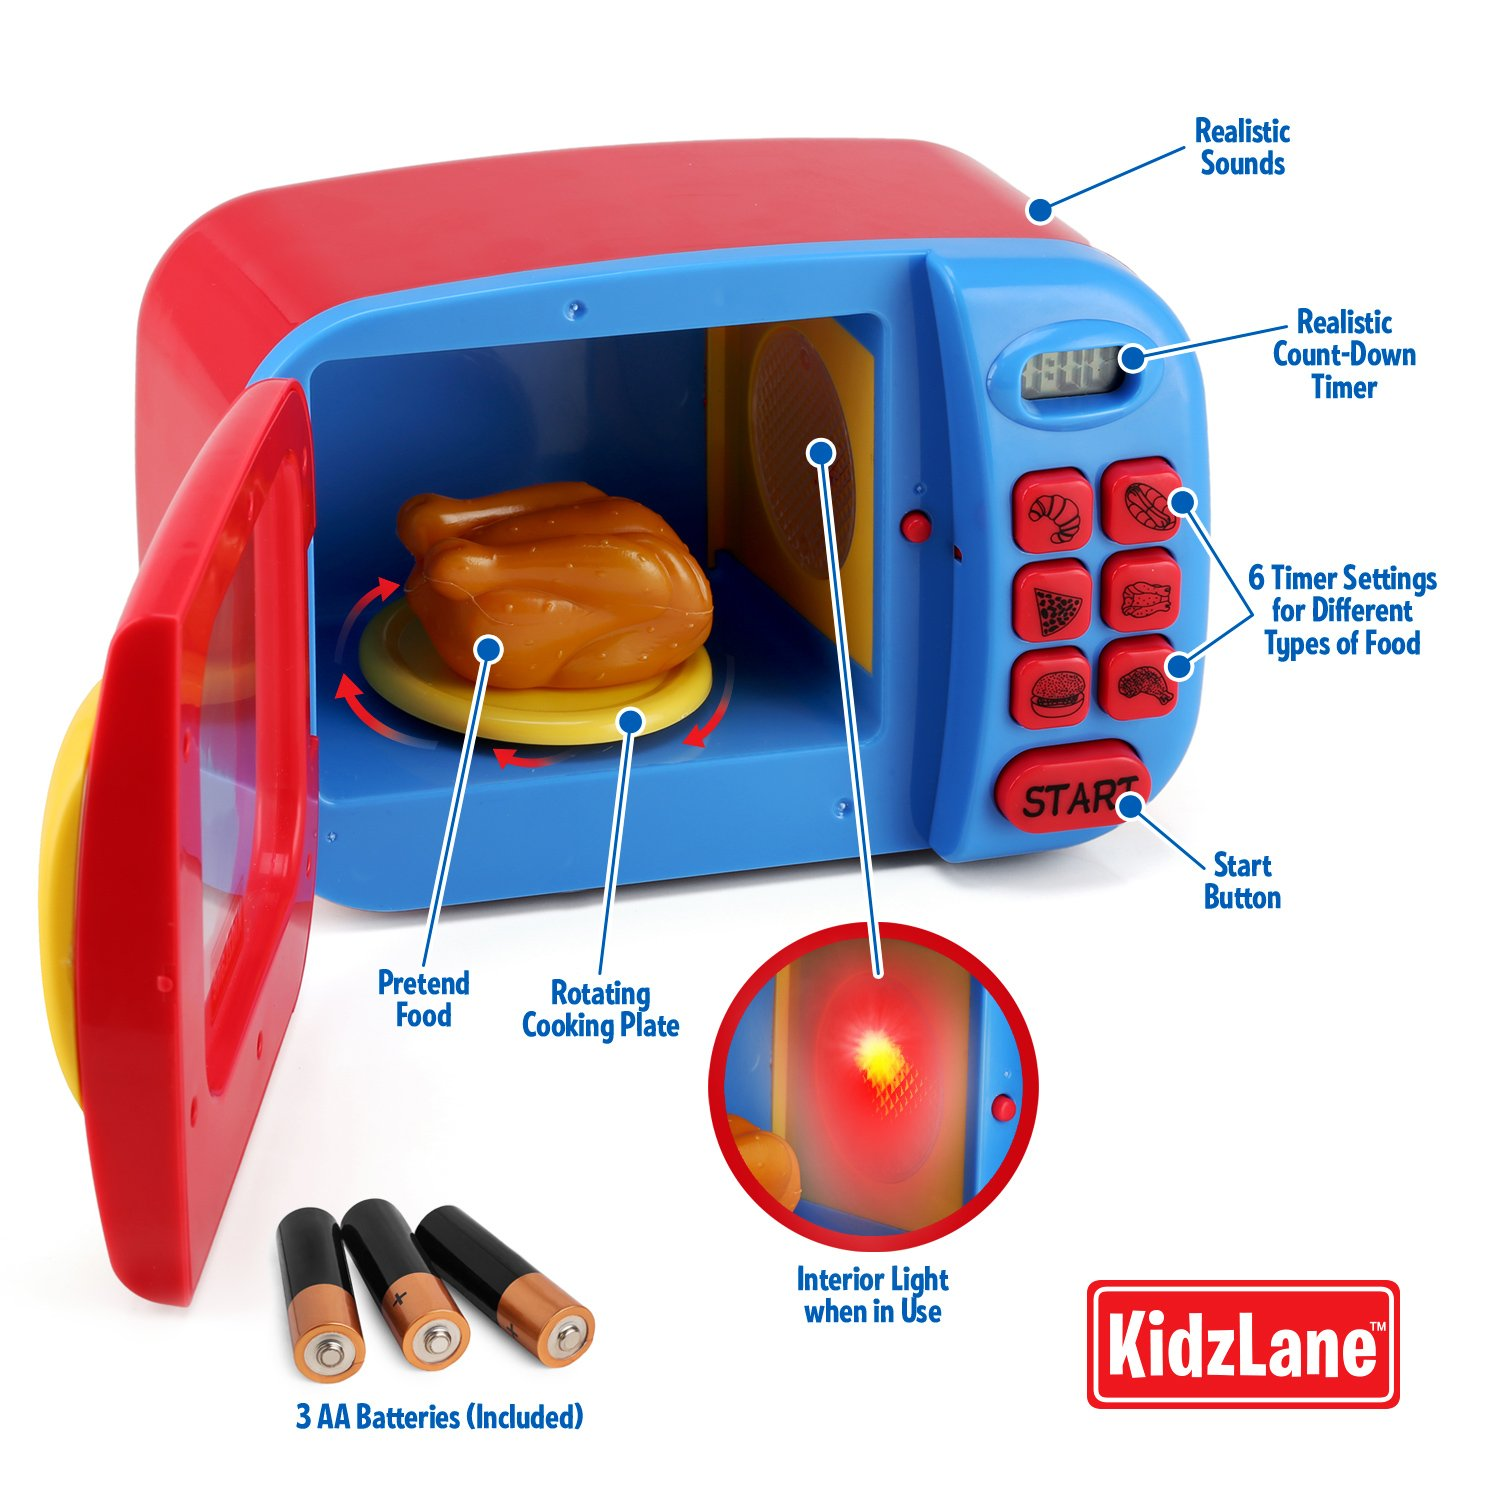 kidzlane microwave oven toy for kids pretend play